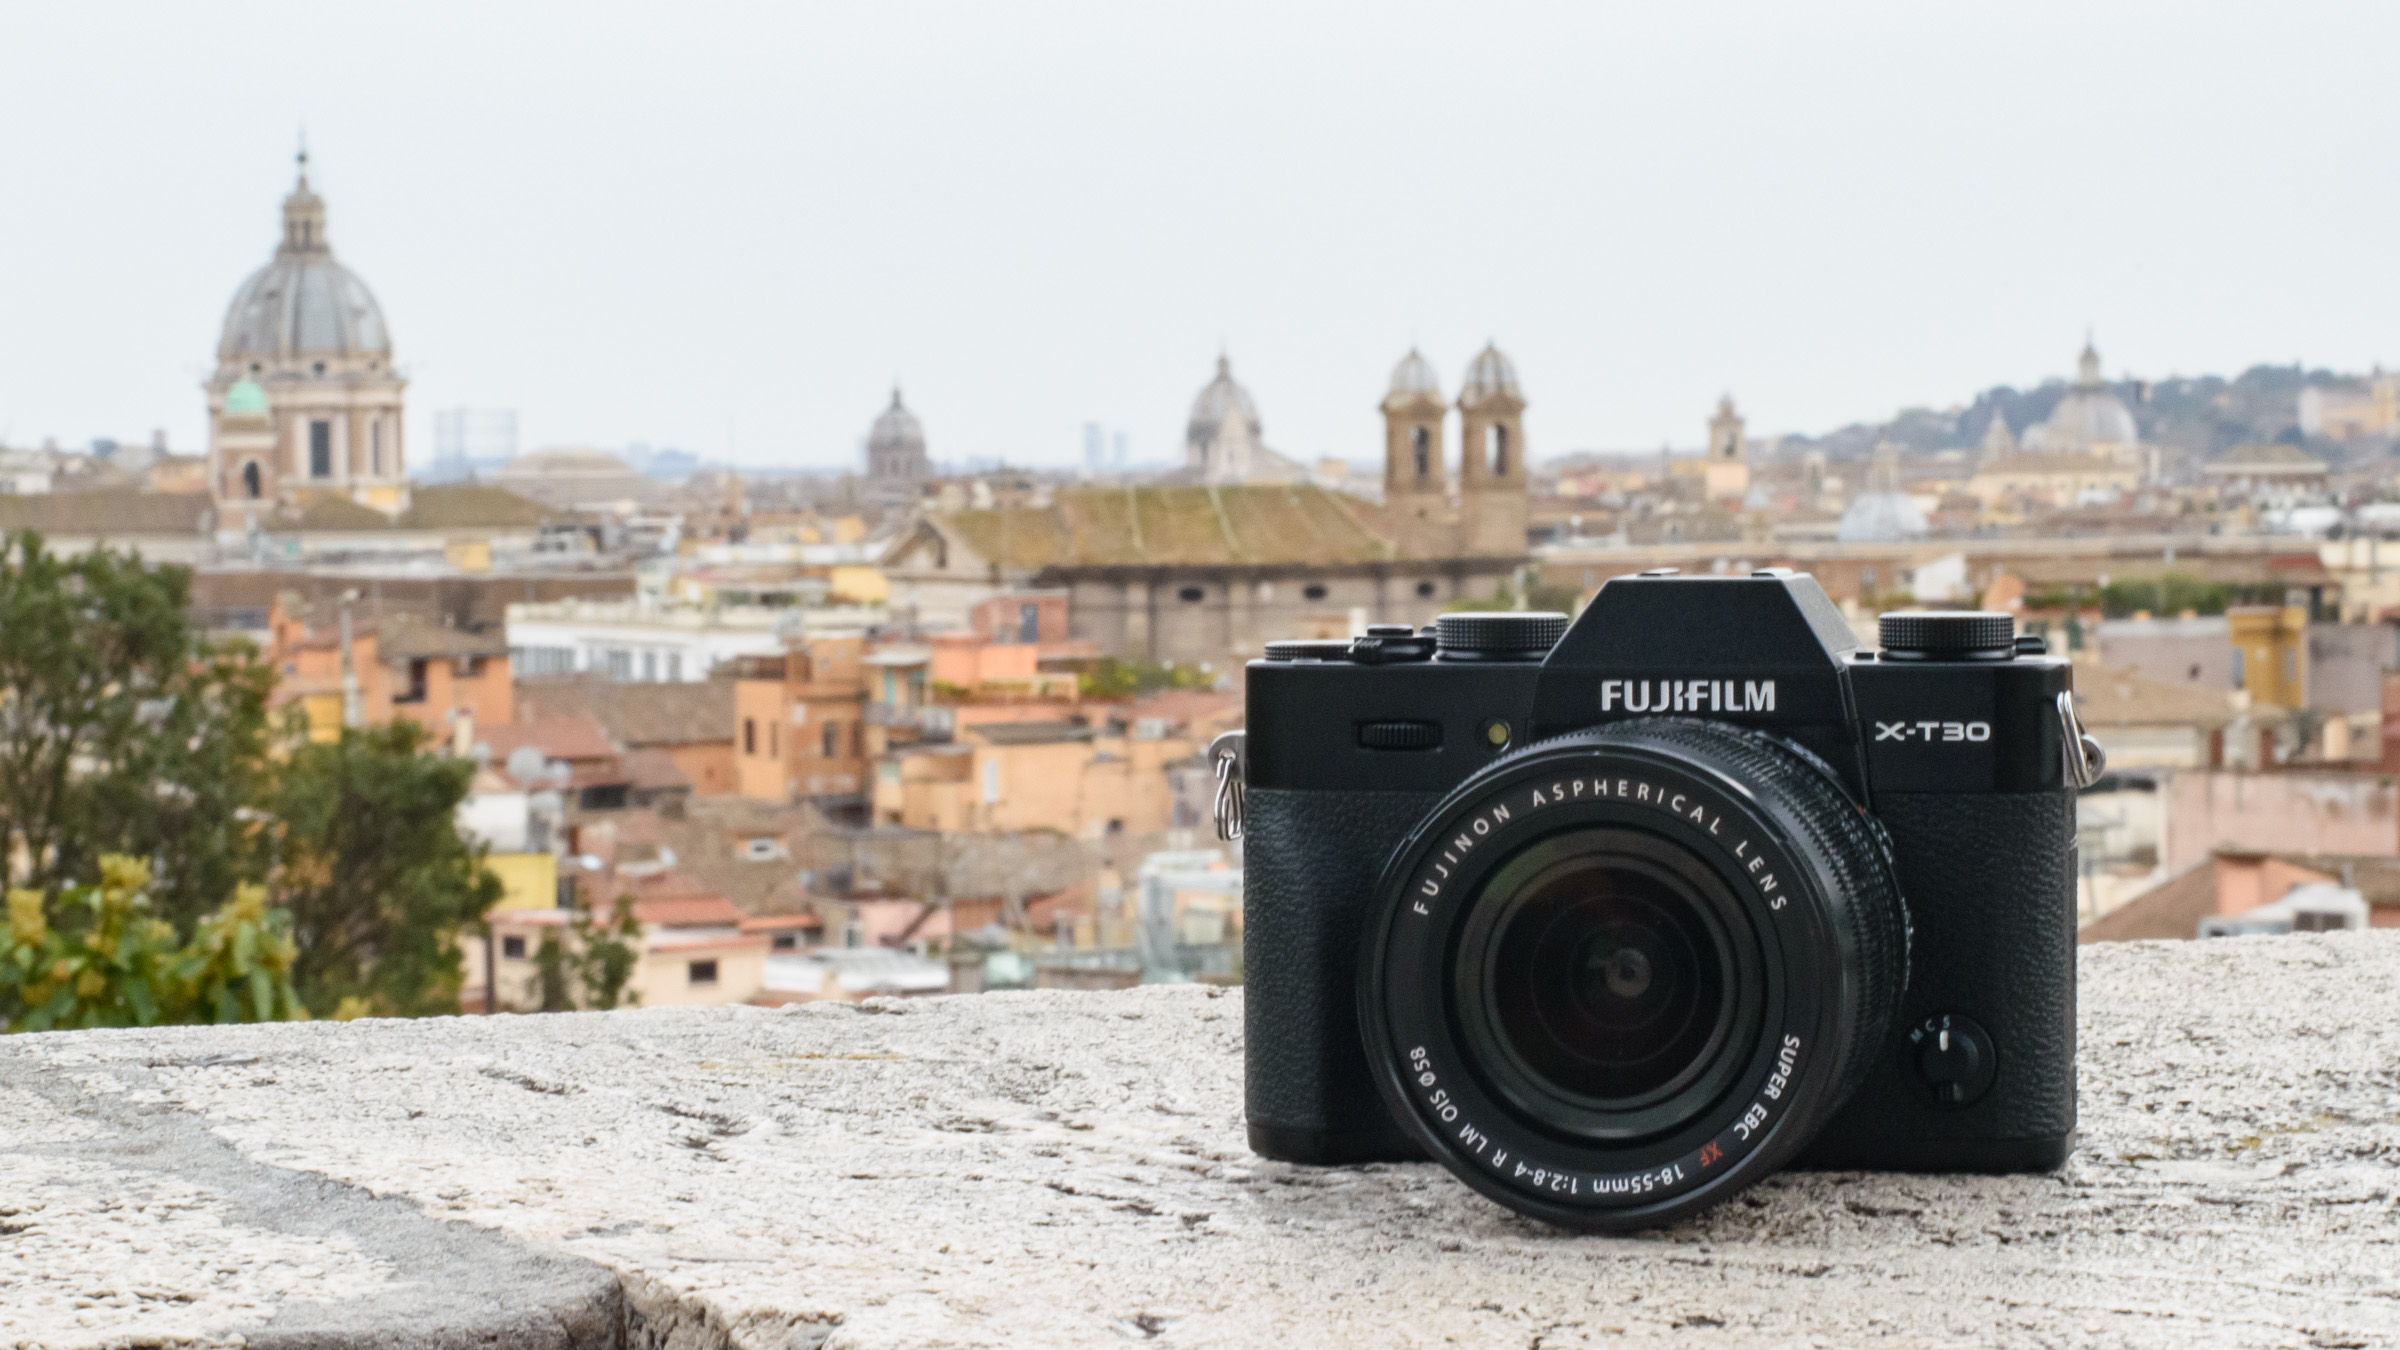 Fujifilm X-T30 review | TechRadar